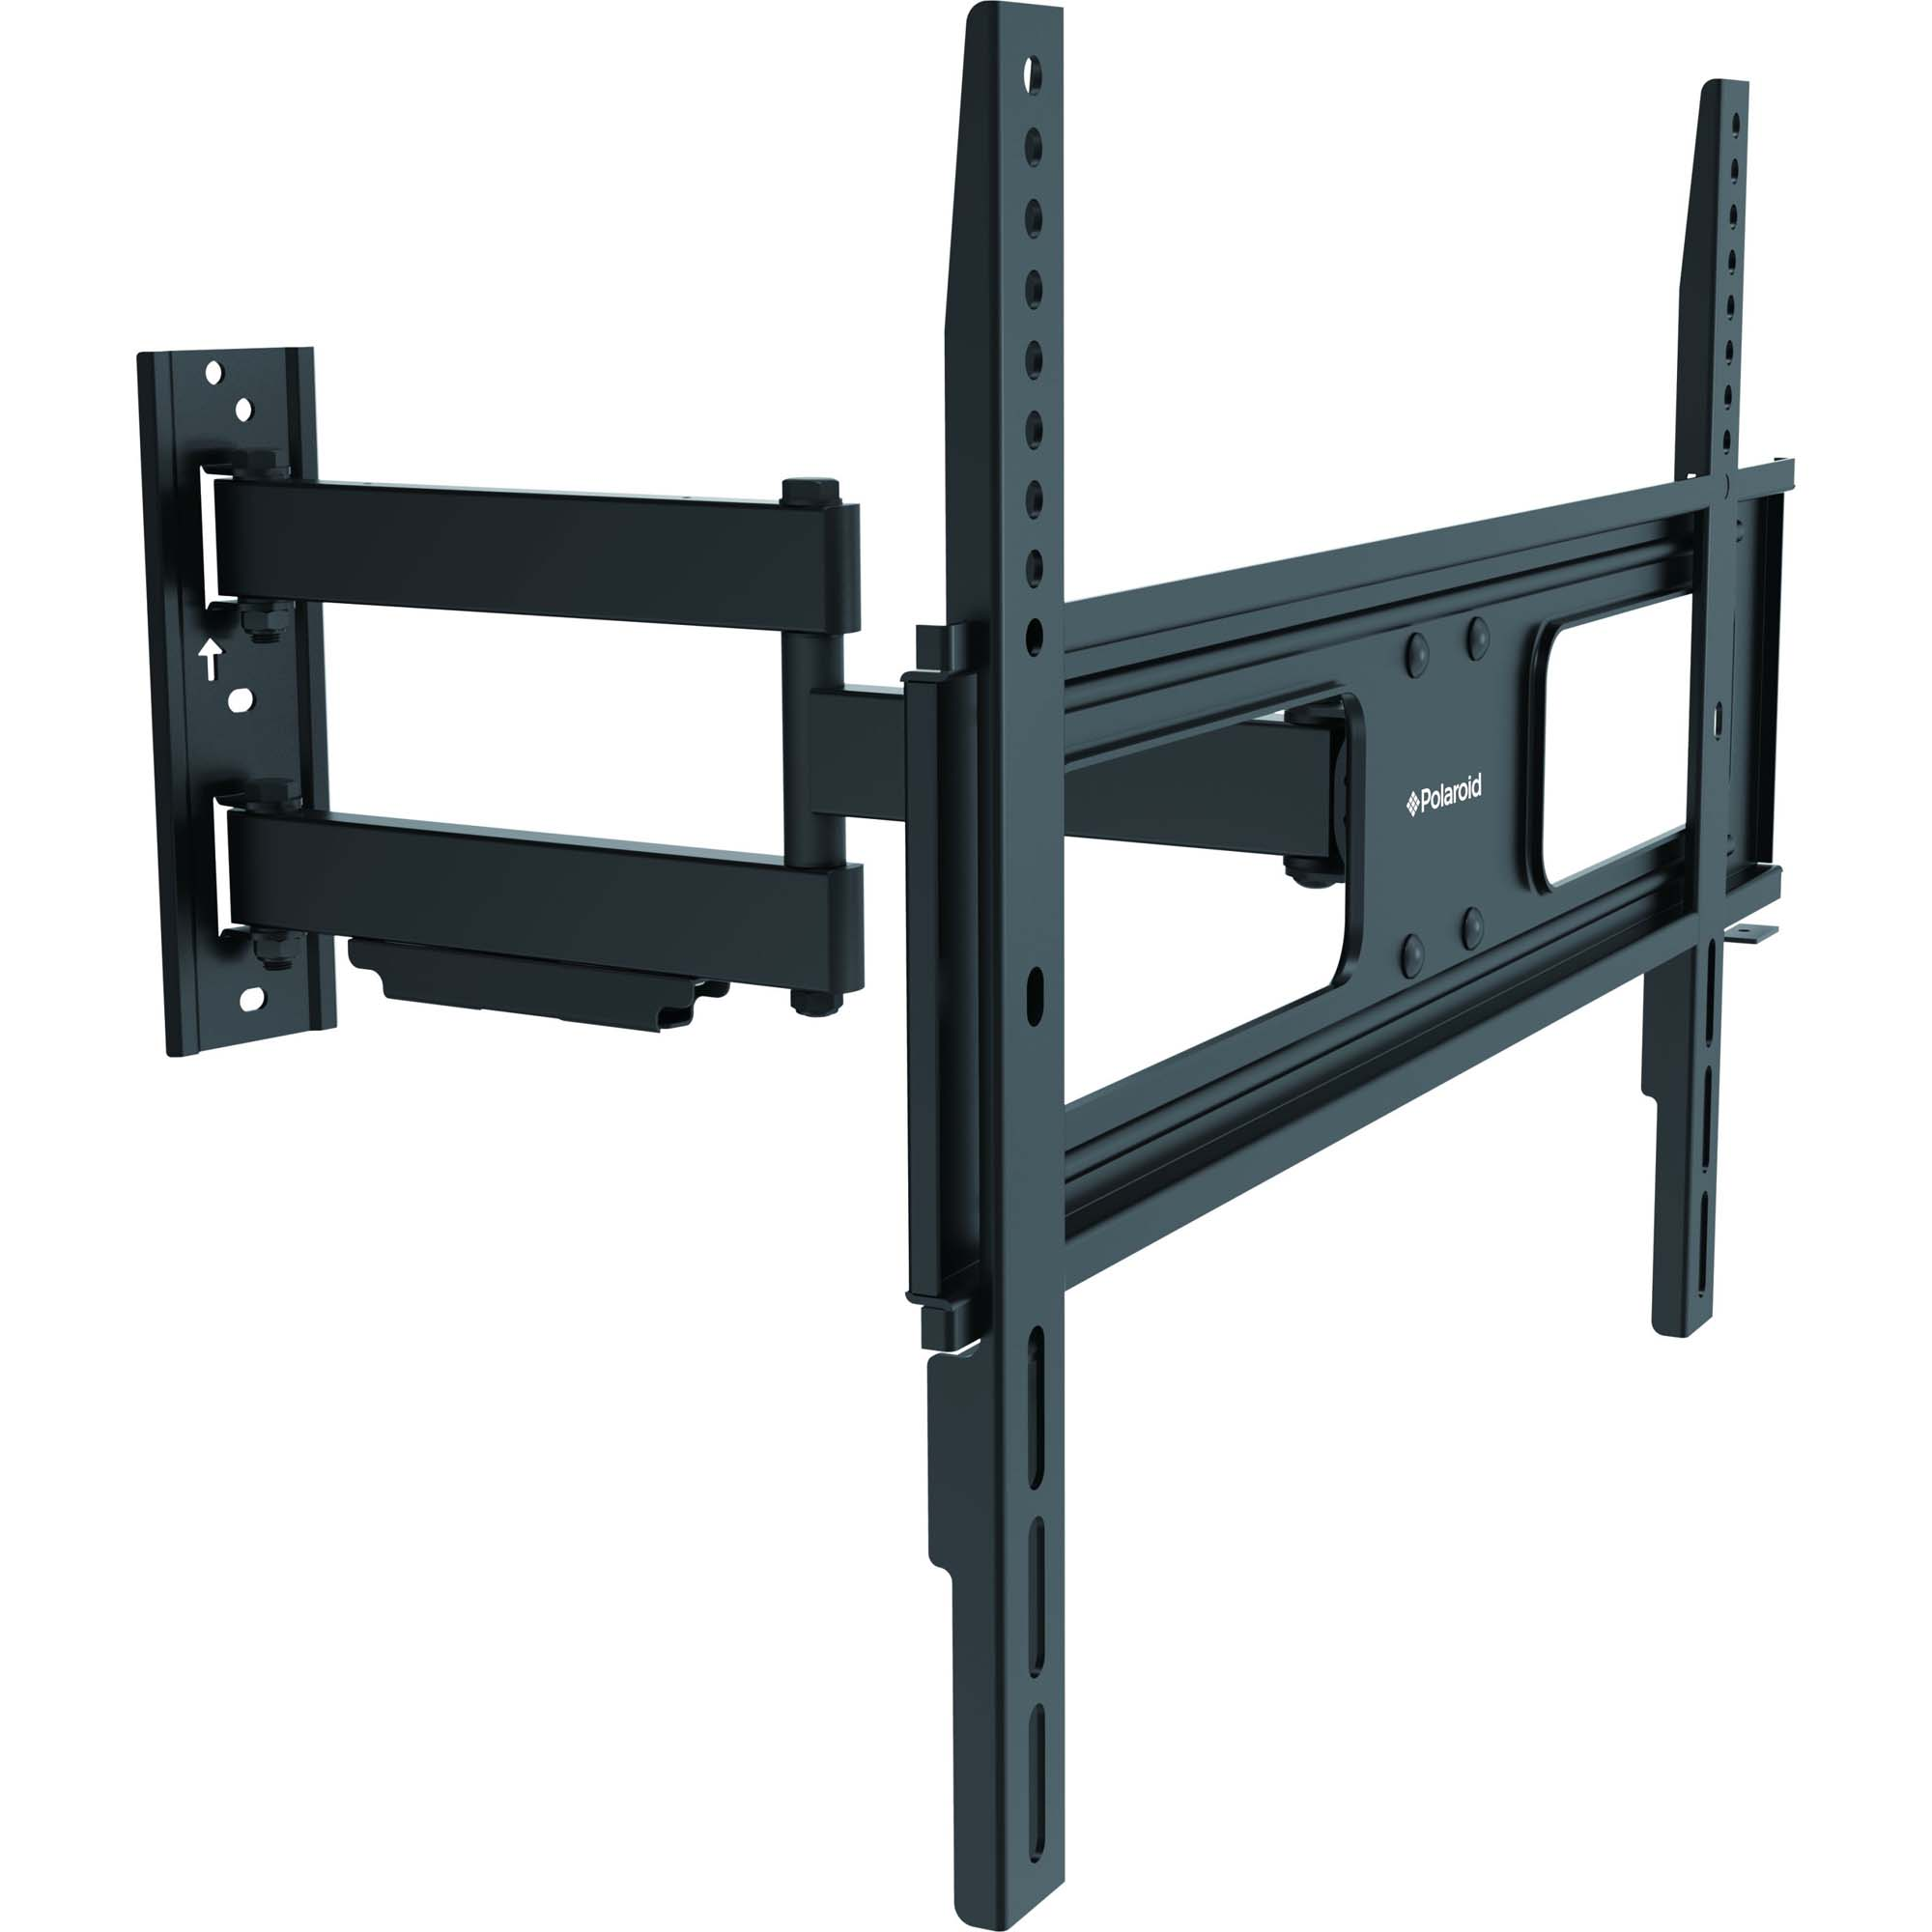 Kmart Tv Mount Tilt Wall Mount Kmart